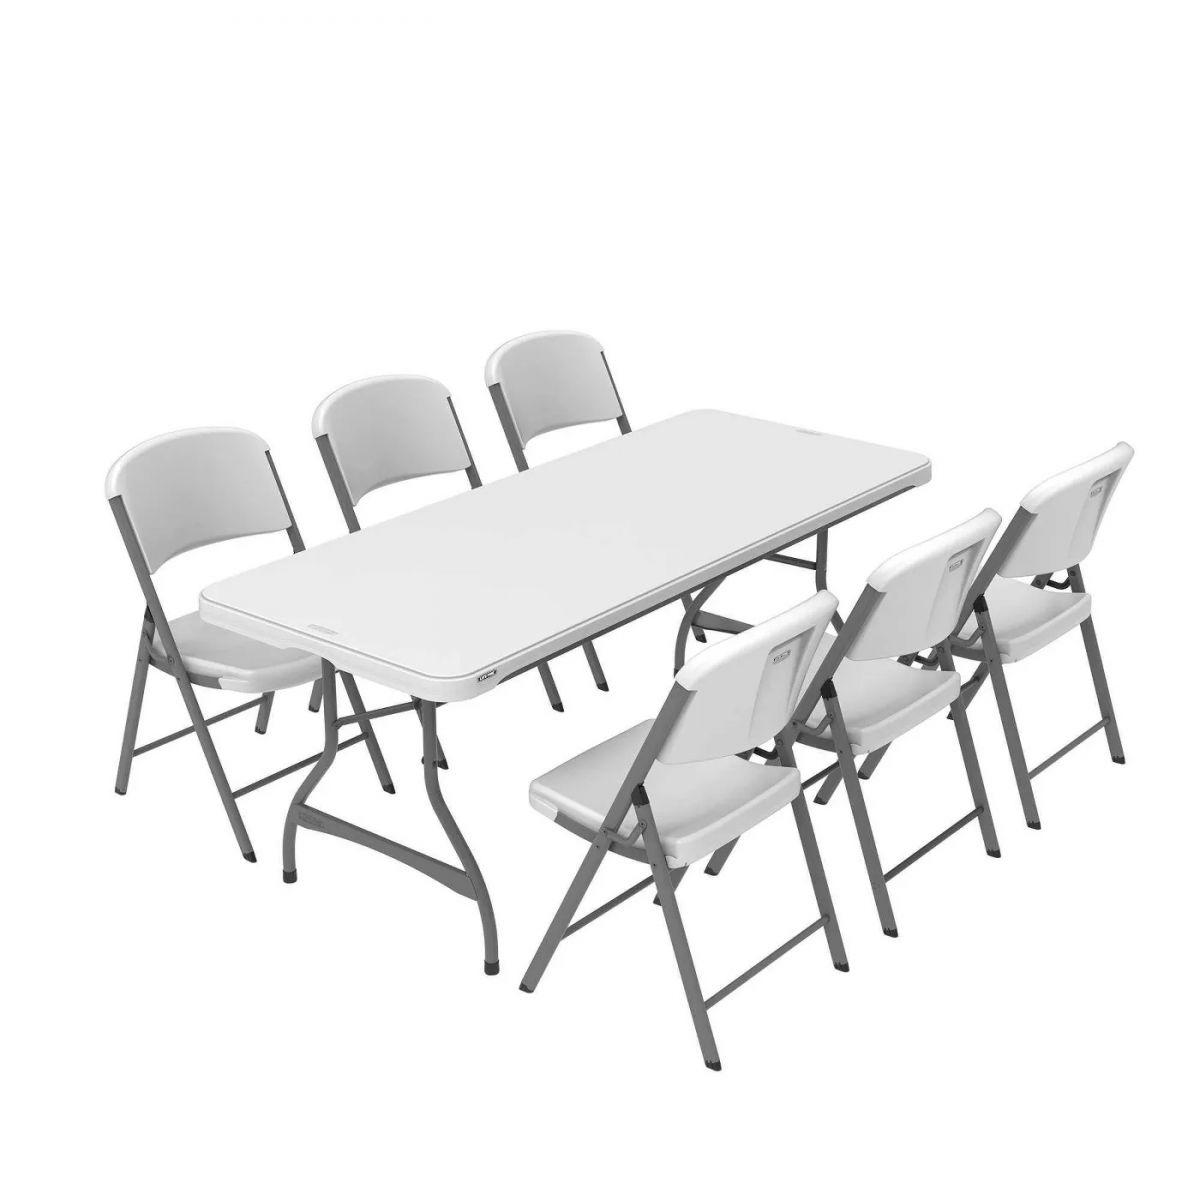 Tables and Chairs Newnan